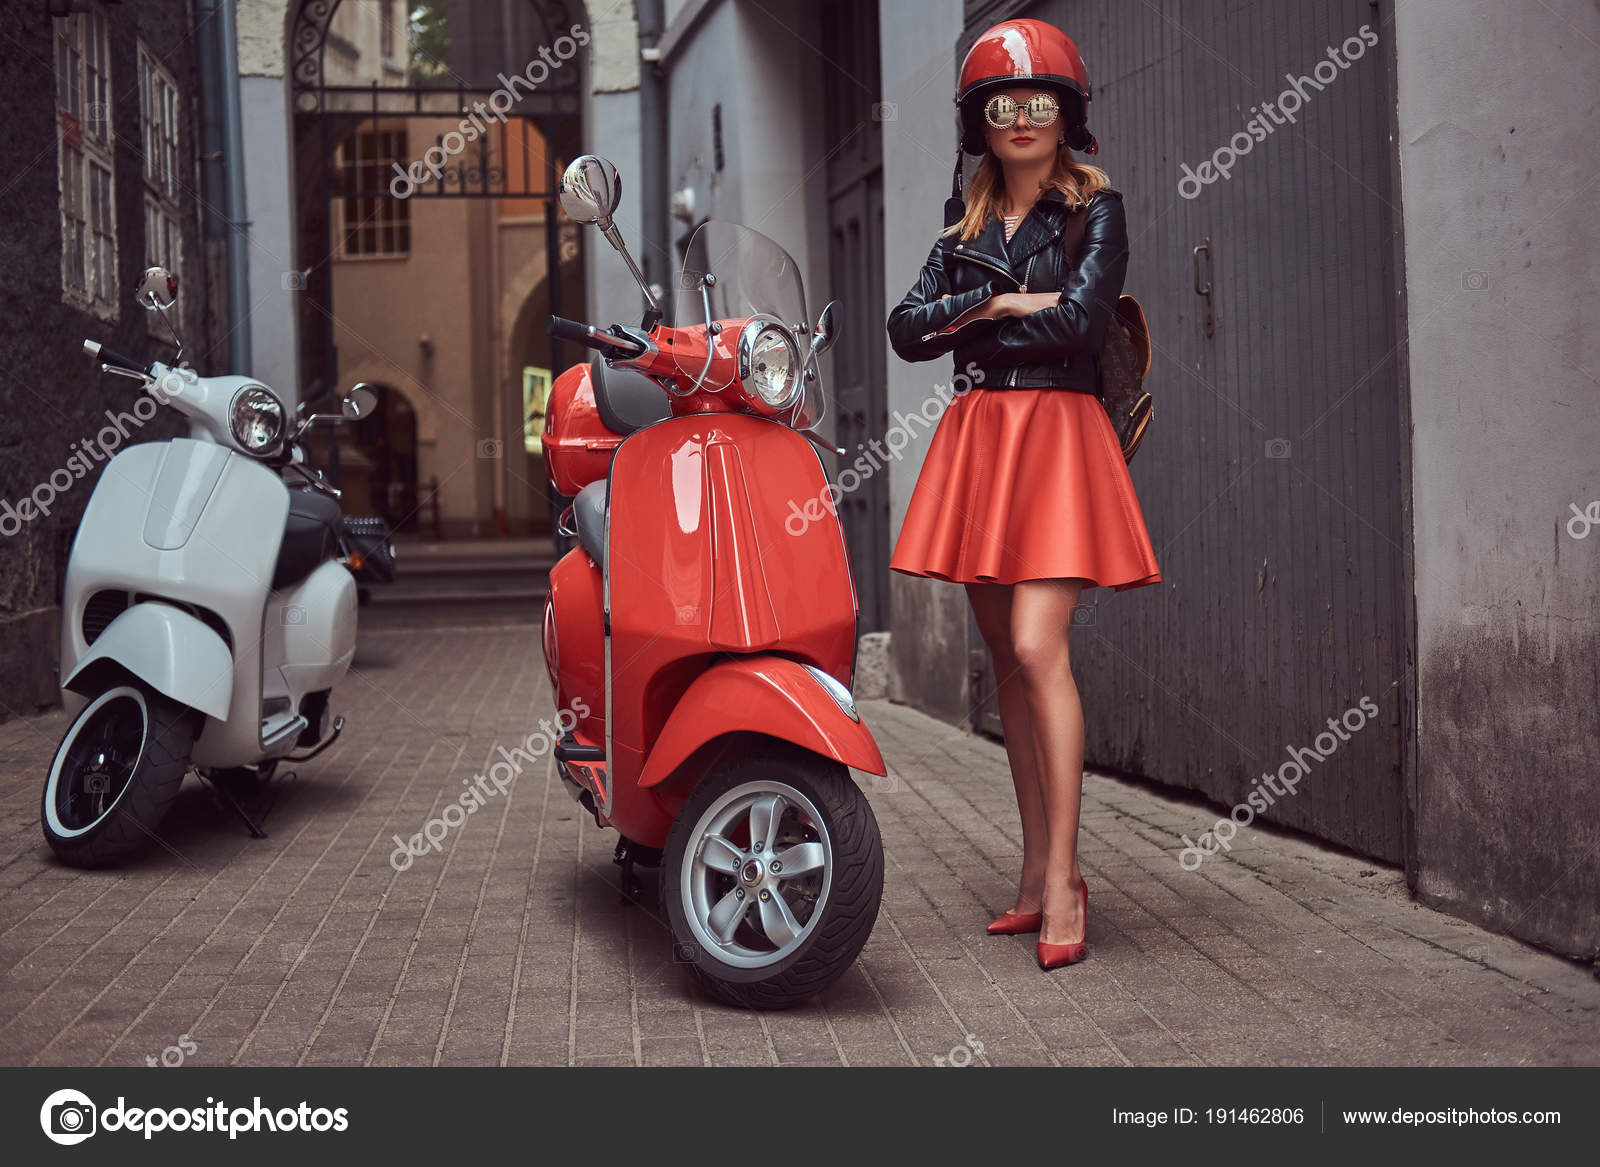 2019 year for lady- Helmet scooter stylish